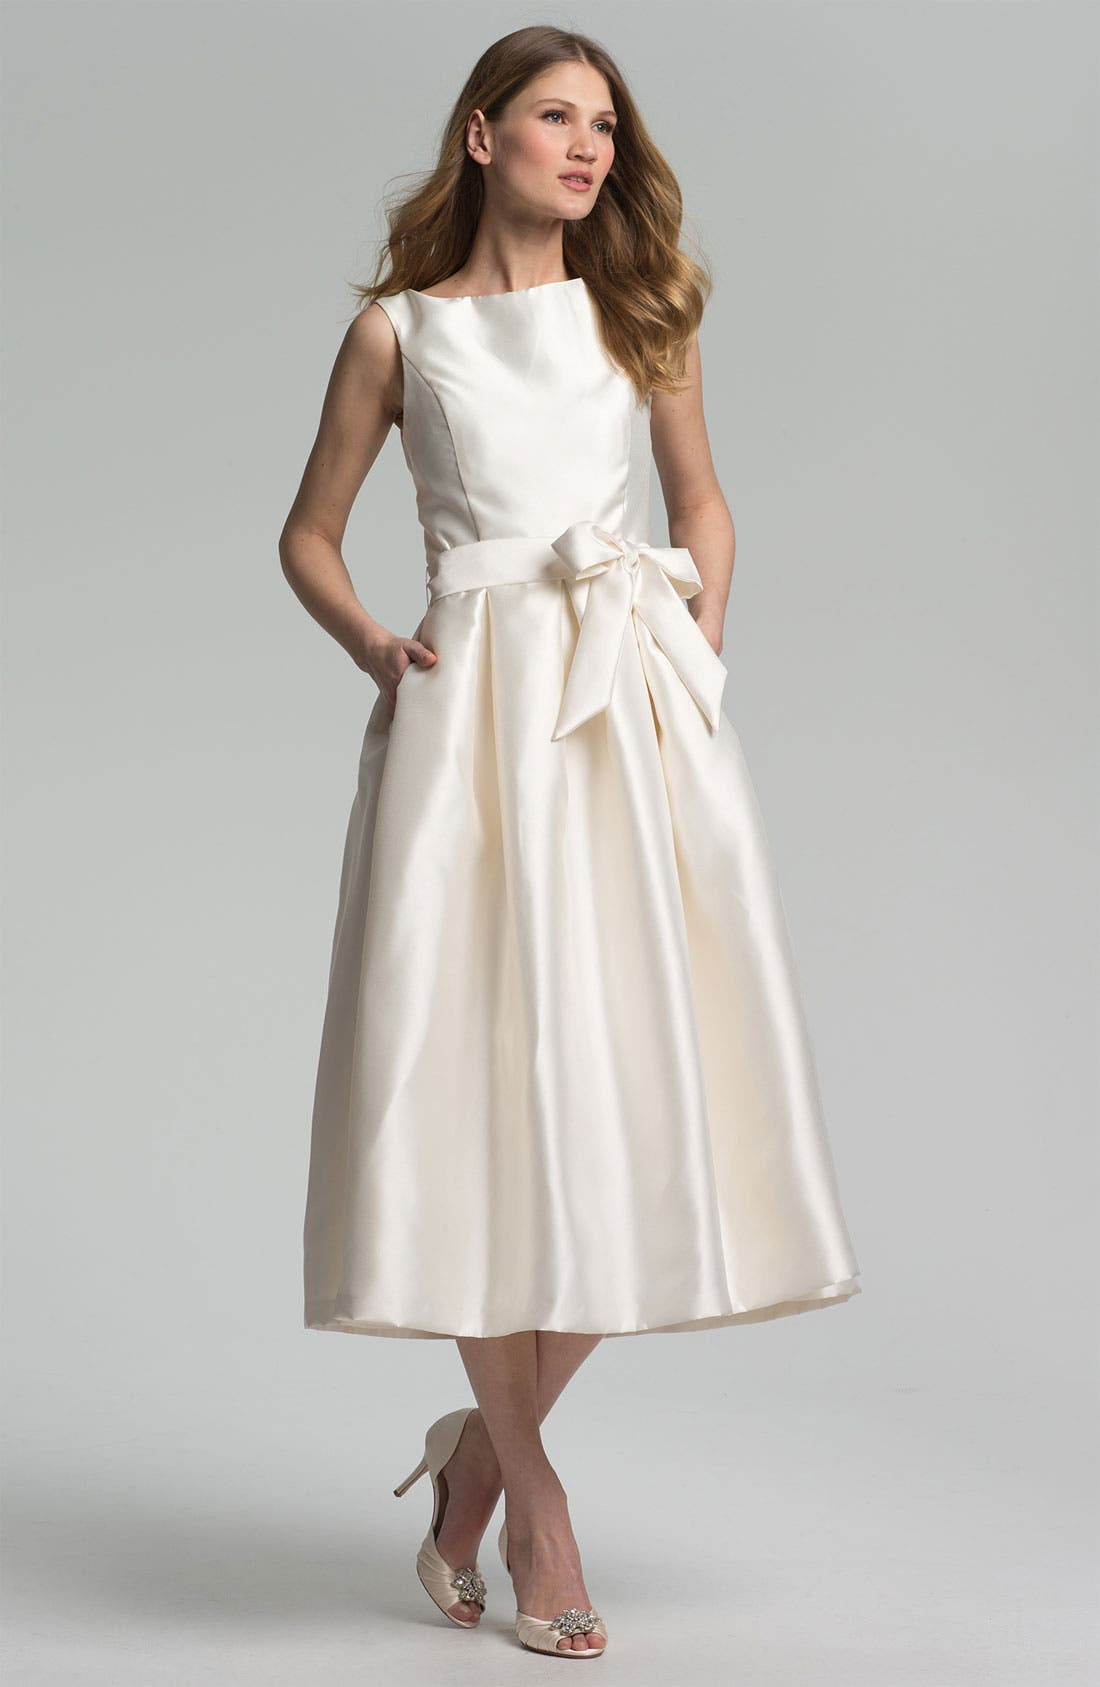 Faille Satin Fit & Flare Dress,                             Main thumbnail 1, color,                             Ivory